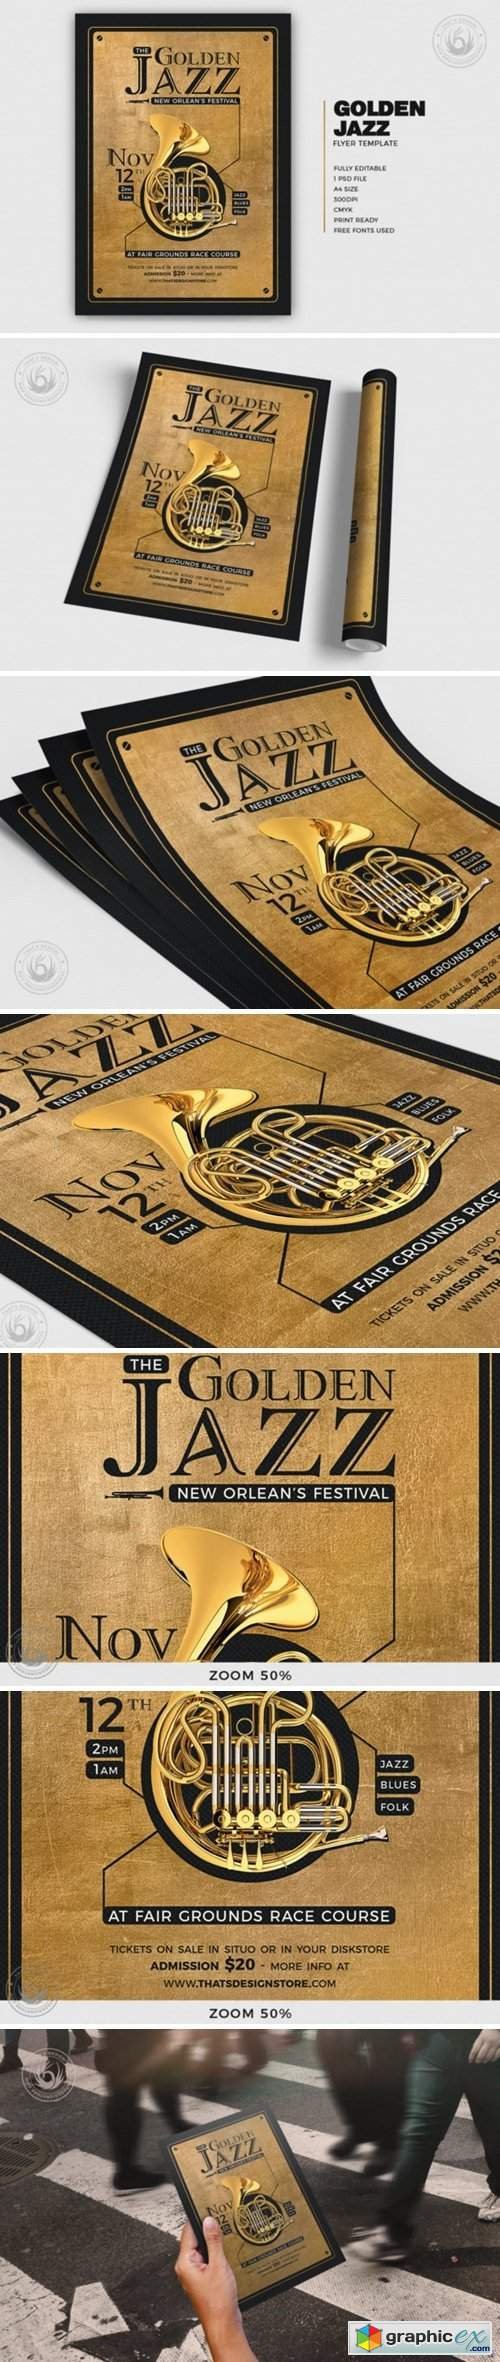 Golden Jazz Flyer Template V4